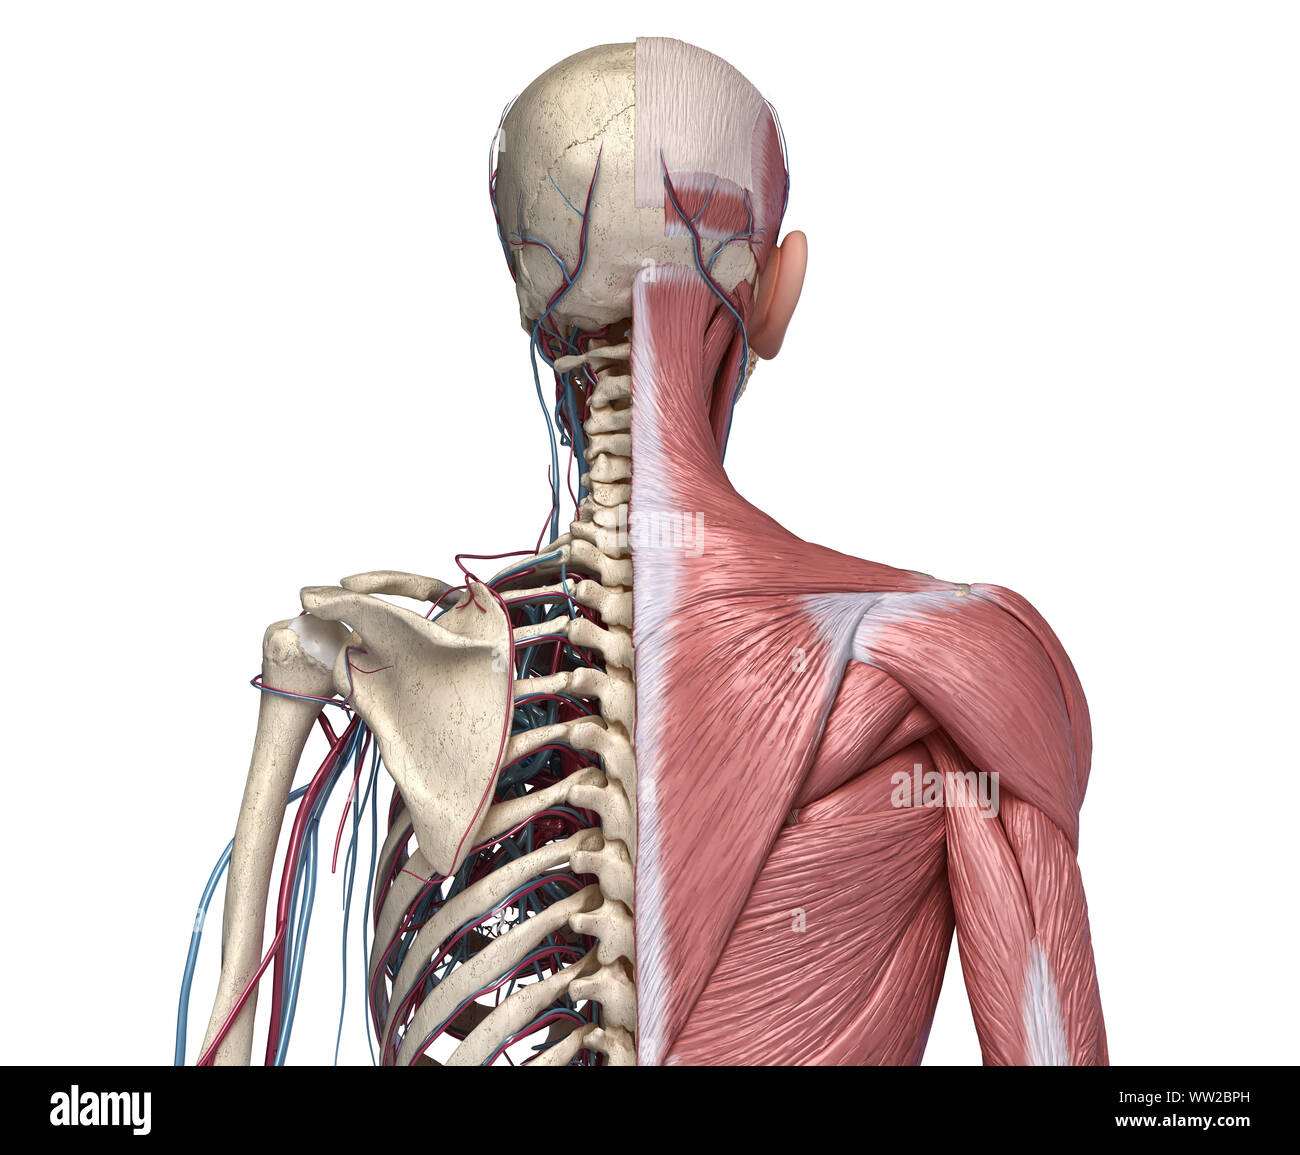 Human Anatomy Torso Skeleton With Muscles, Veins And